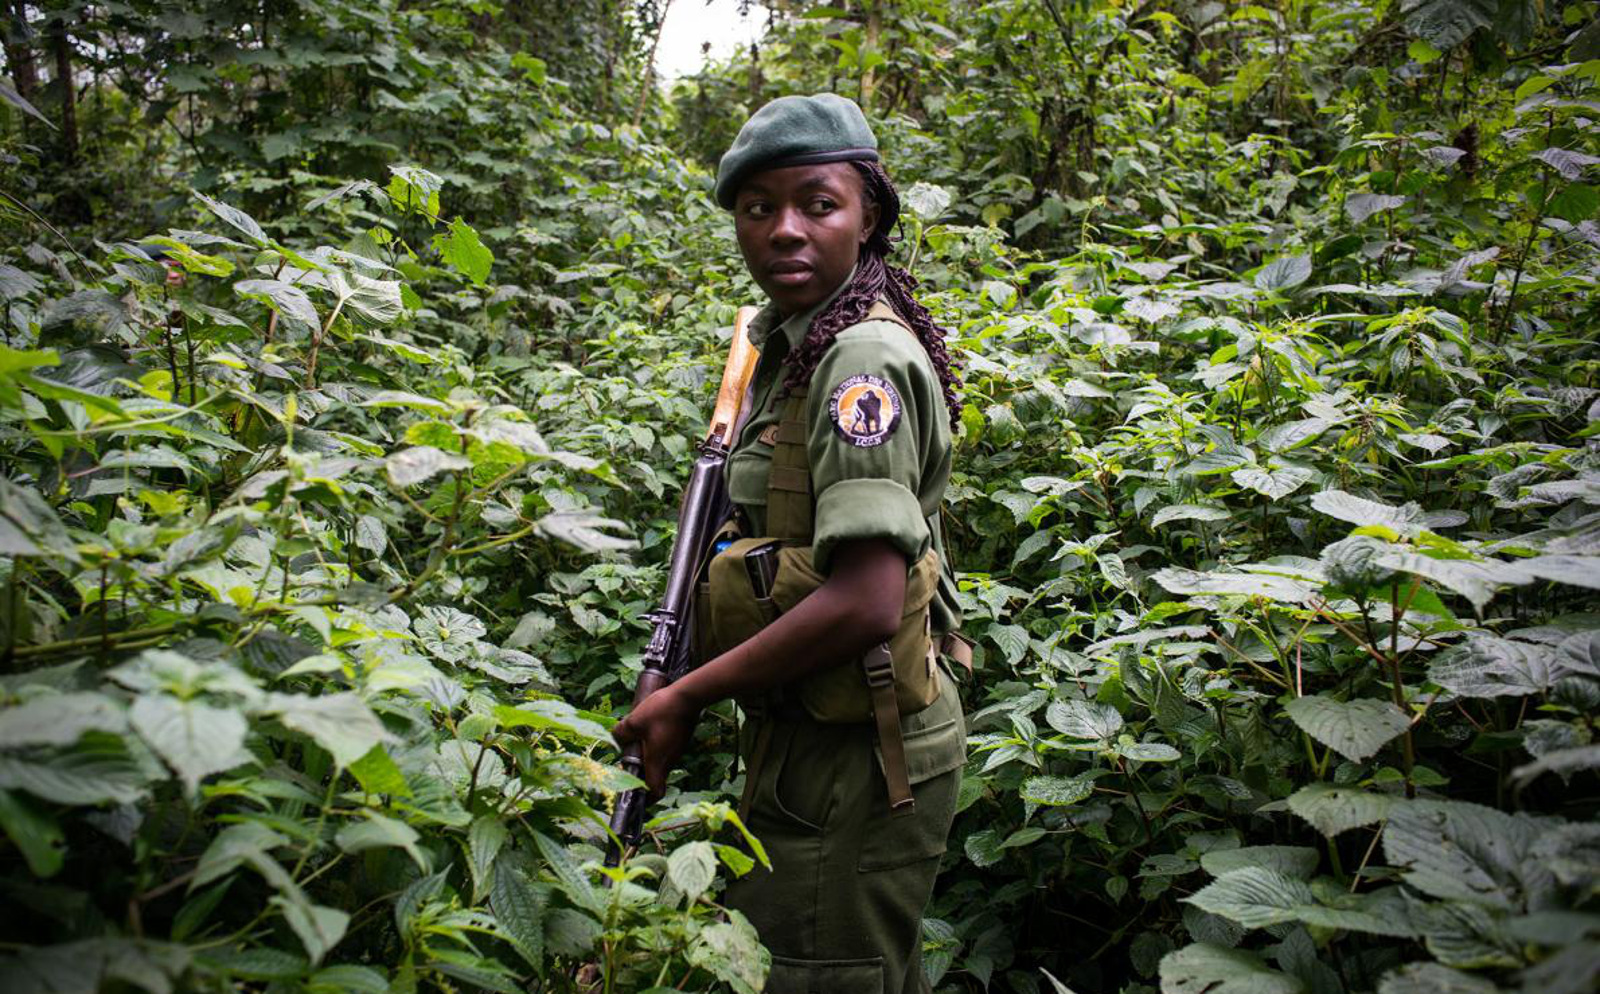 Meet The Badass Women Who Are Protecting Threatened Wildlife in Virunga National Park